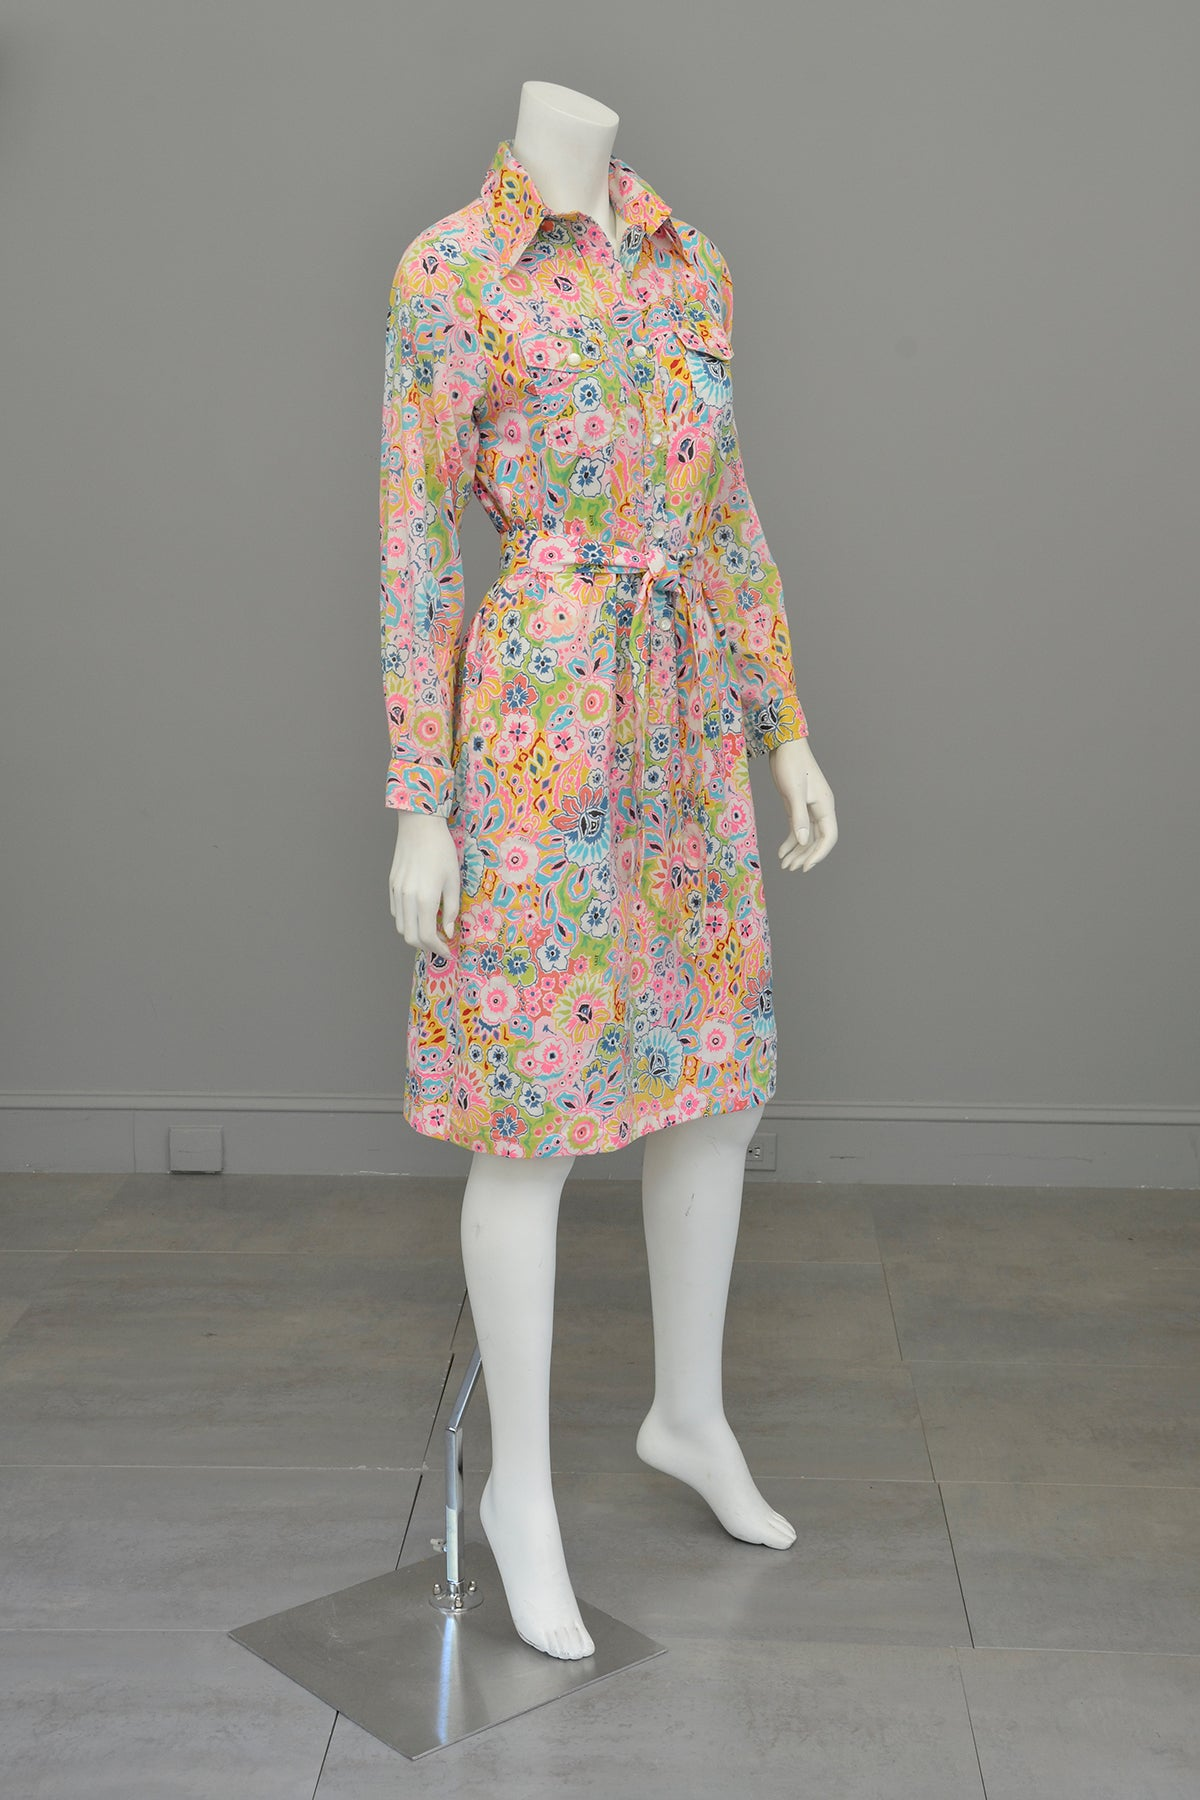 1960s Vintage Lilly Pulitzer Floral Print Button Down Dress | The Lilly Dress